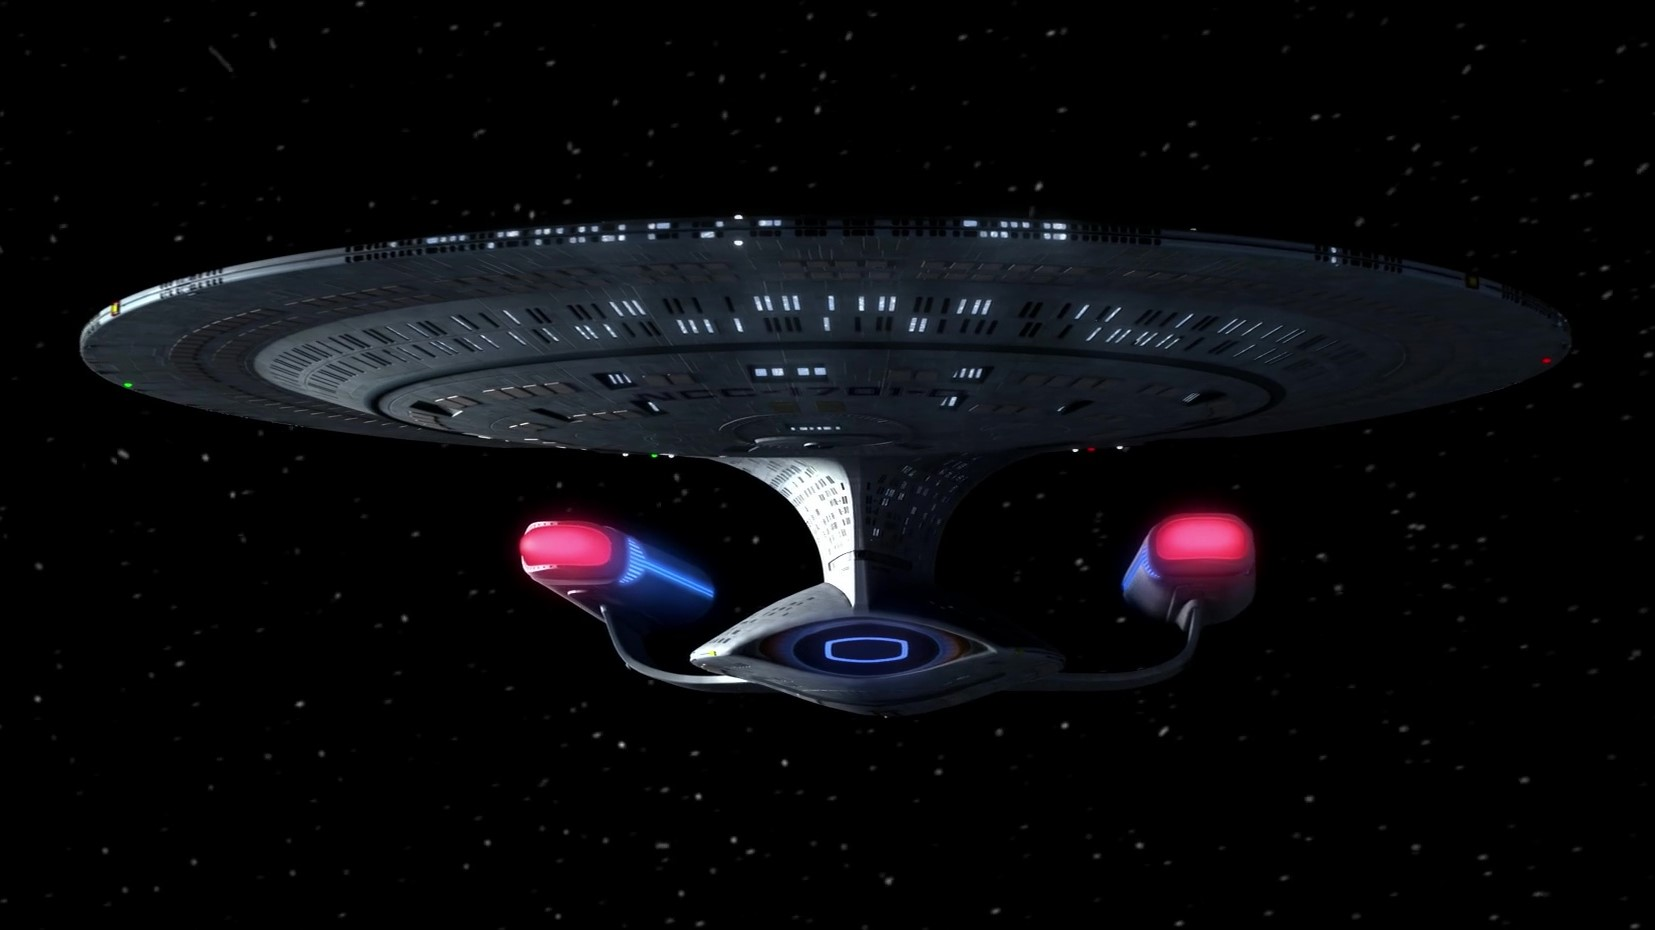 USS Enterprise (NCC-1701-D)